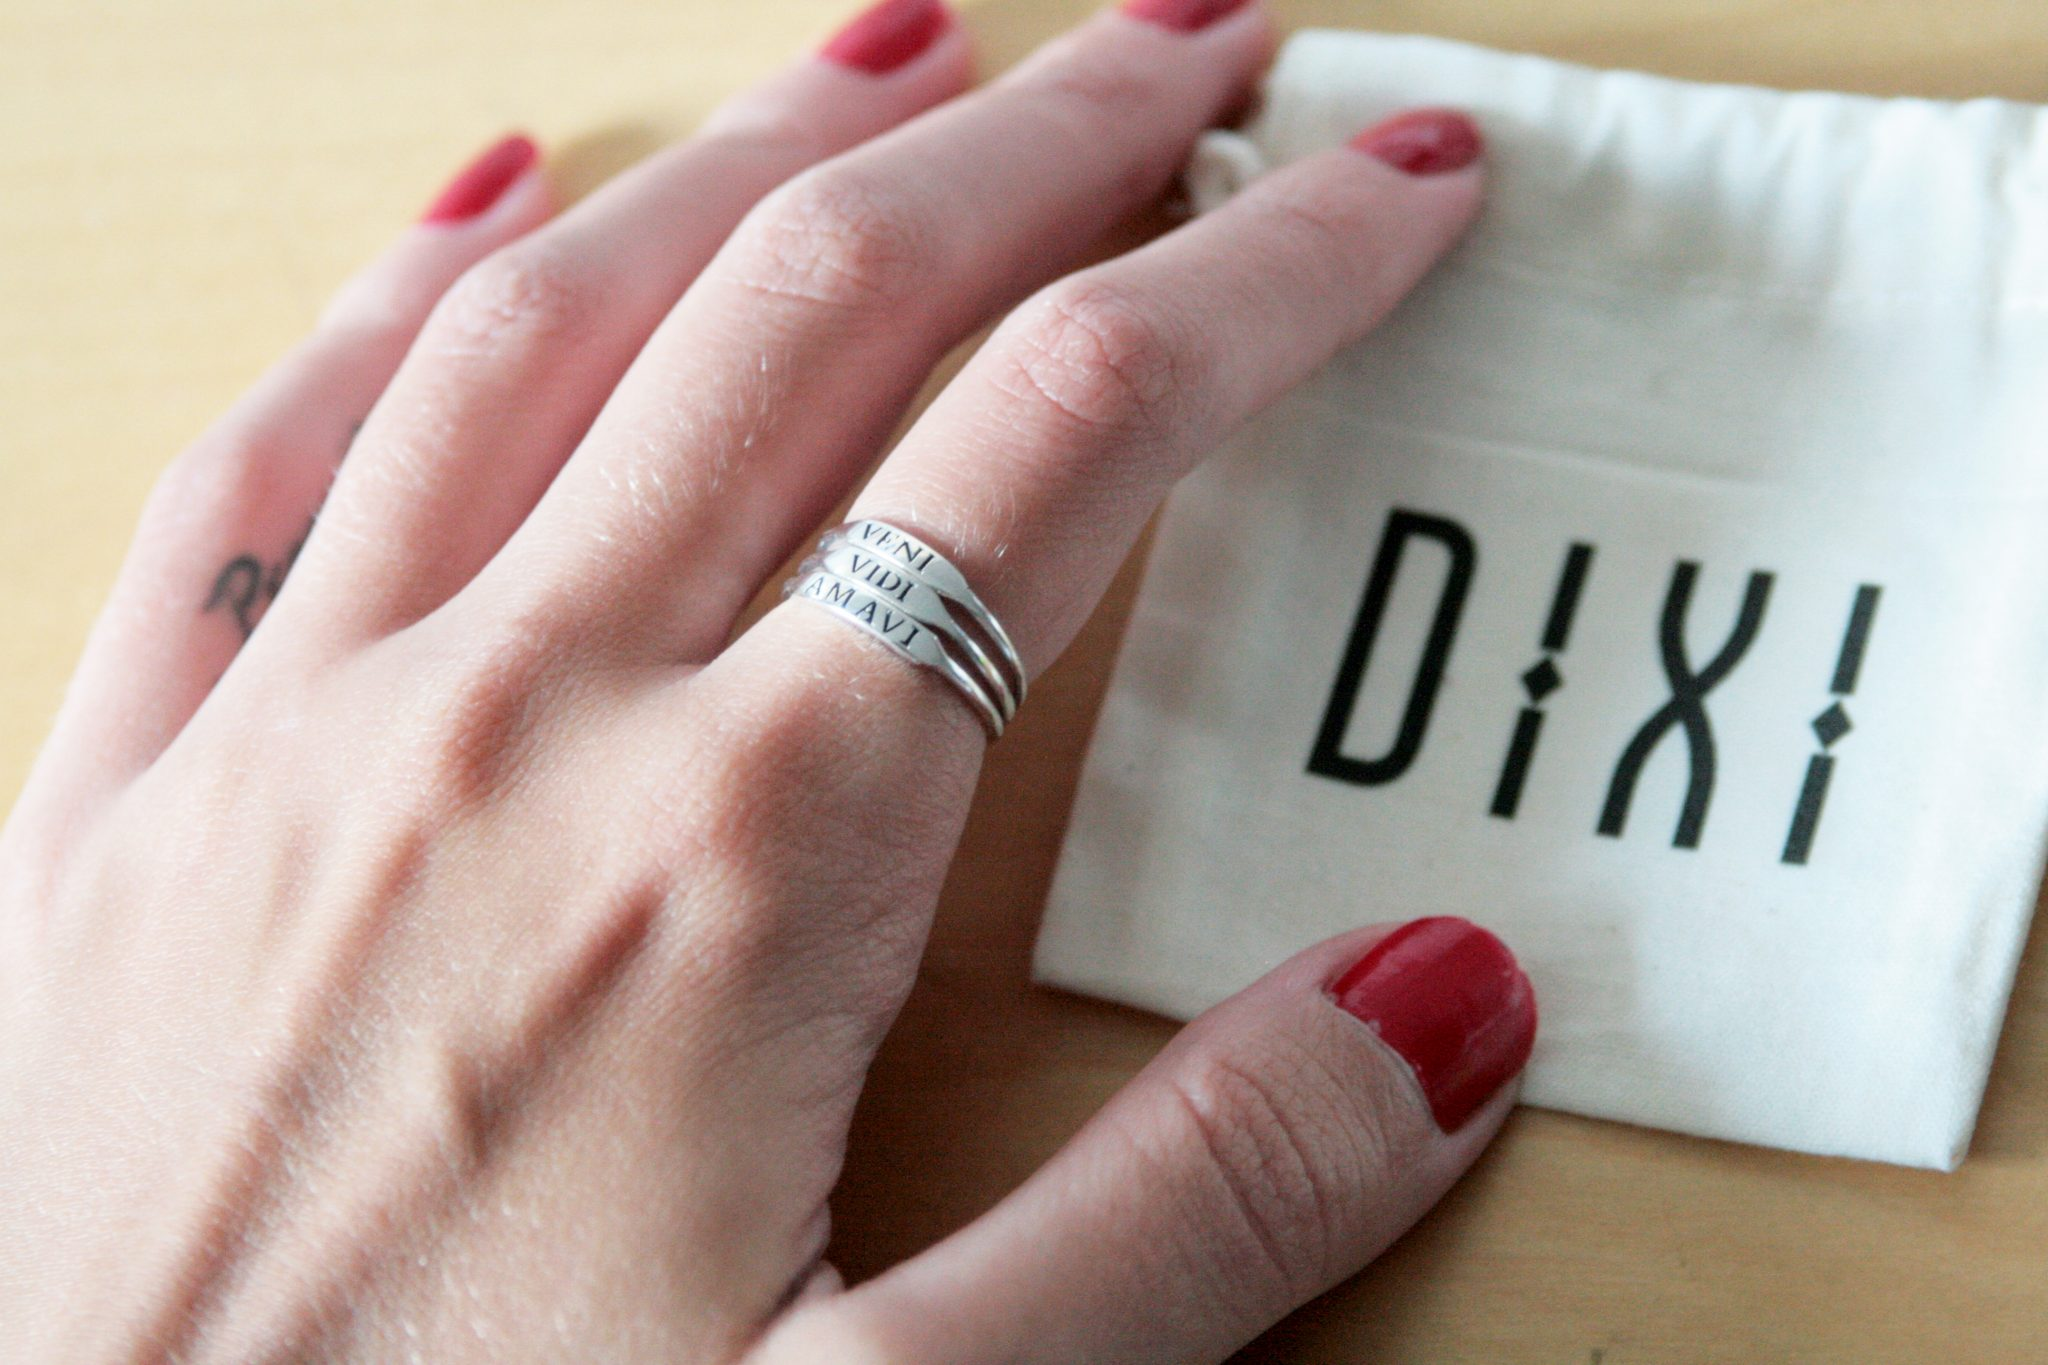 Manchester based fashion and lifestyle blogger. Dixi jewellery - silver veni vidi amavi rings.